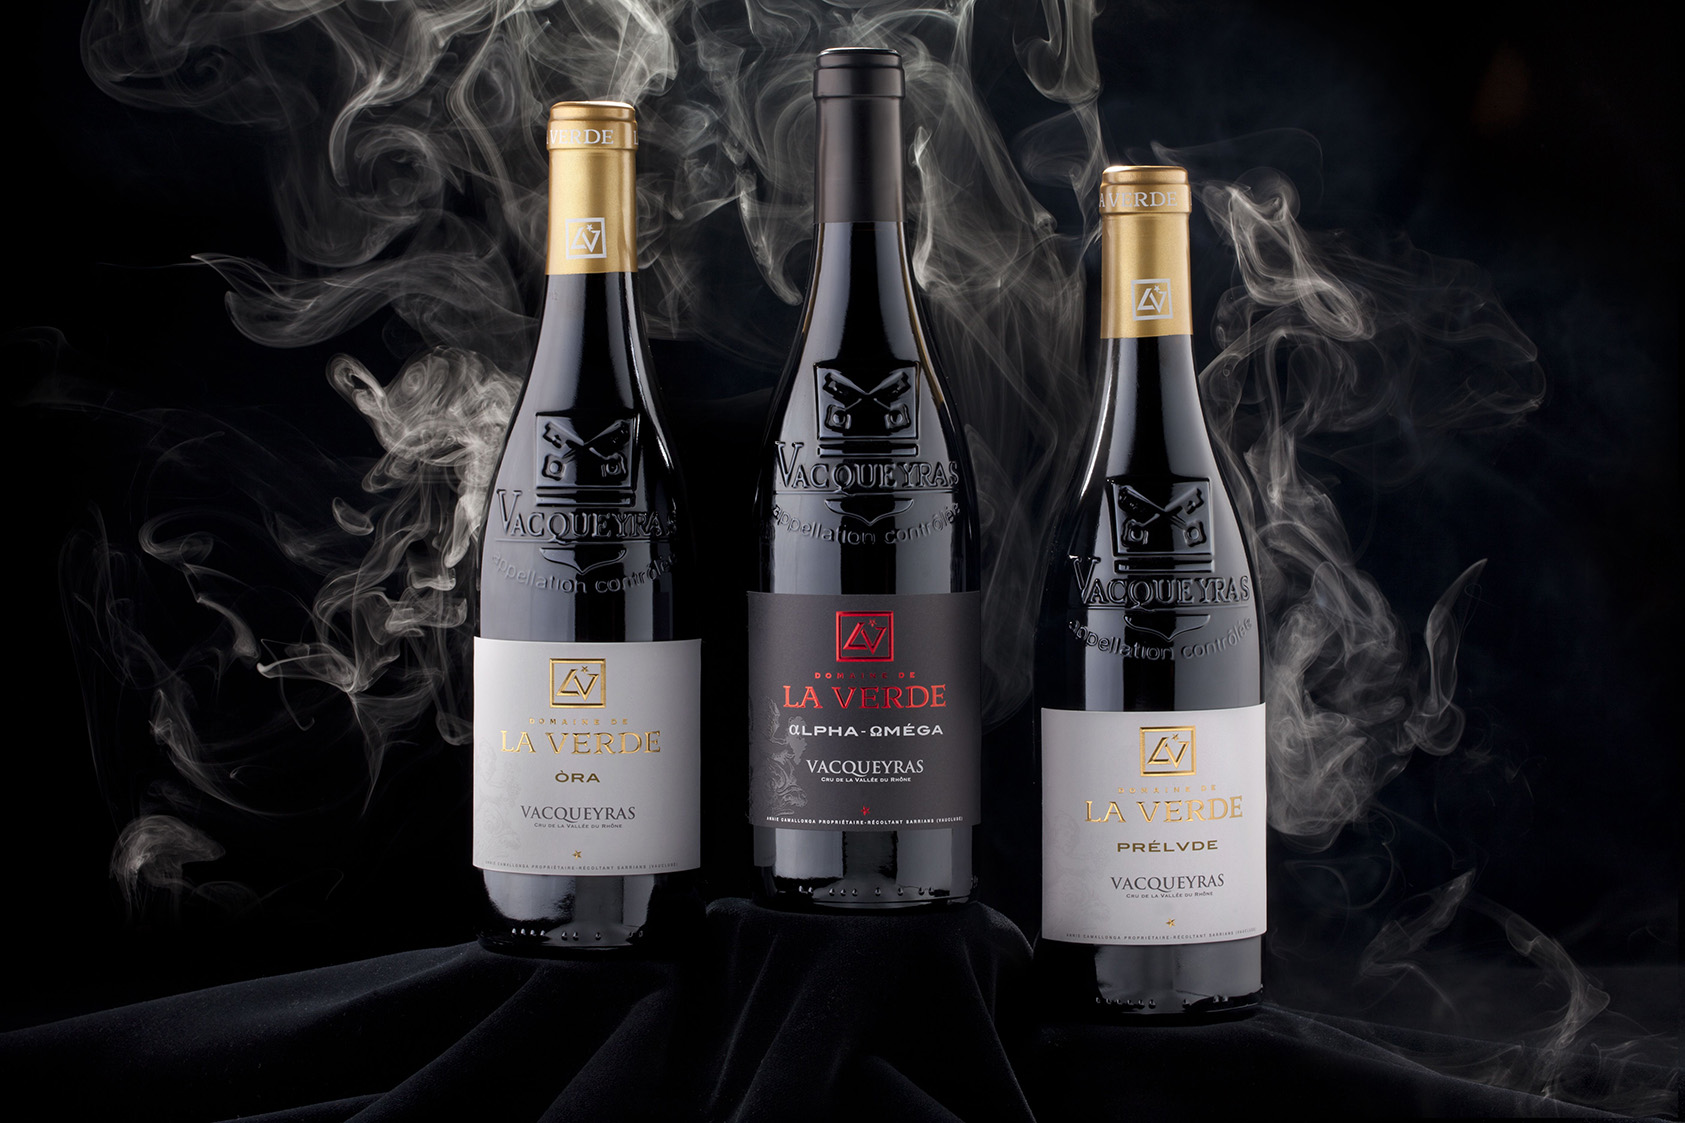 packshot et ambiance bouteilles de vin photographe culinaire pauline daniel. Black Bedroom Furniture Sets. Home Design Ideas